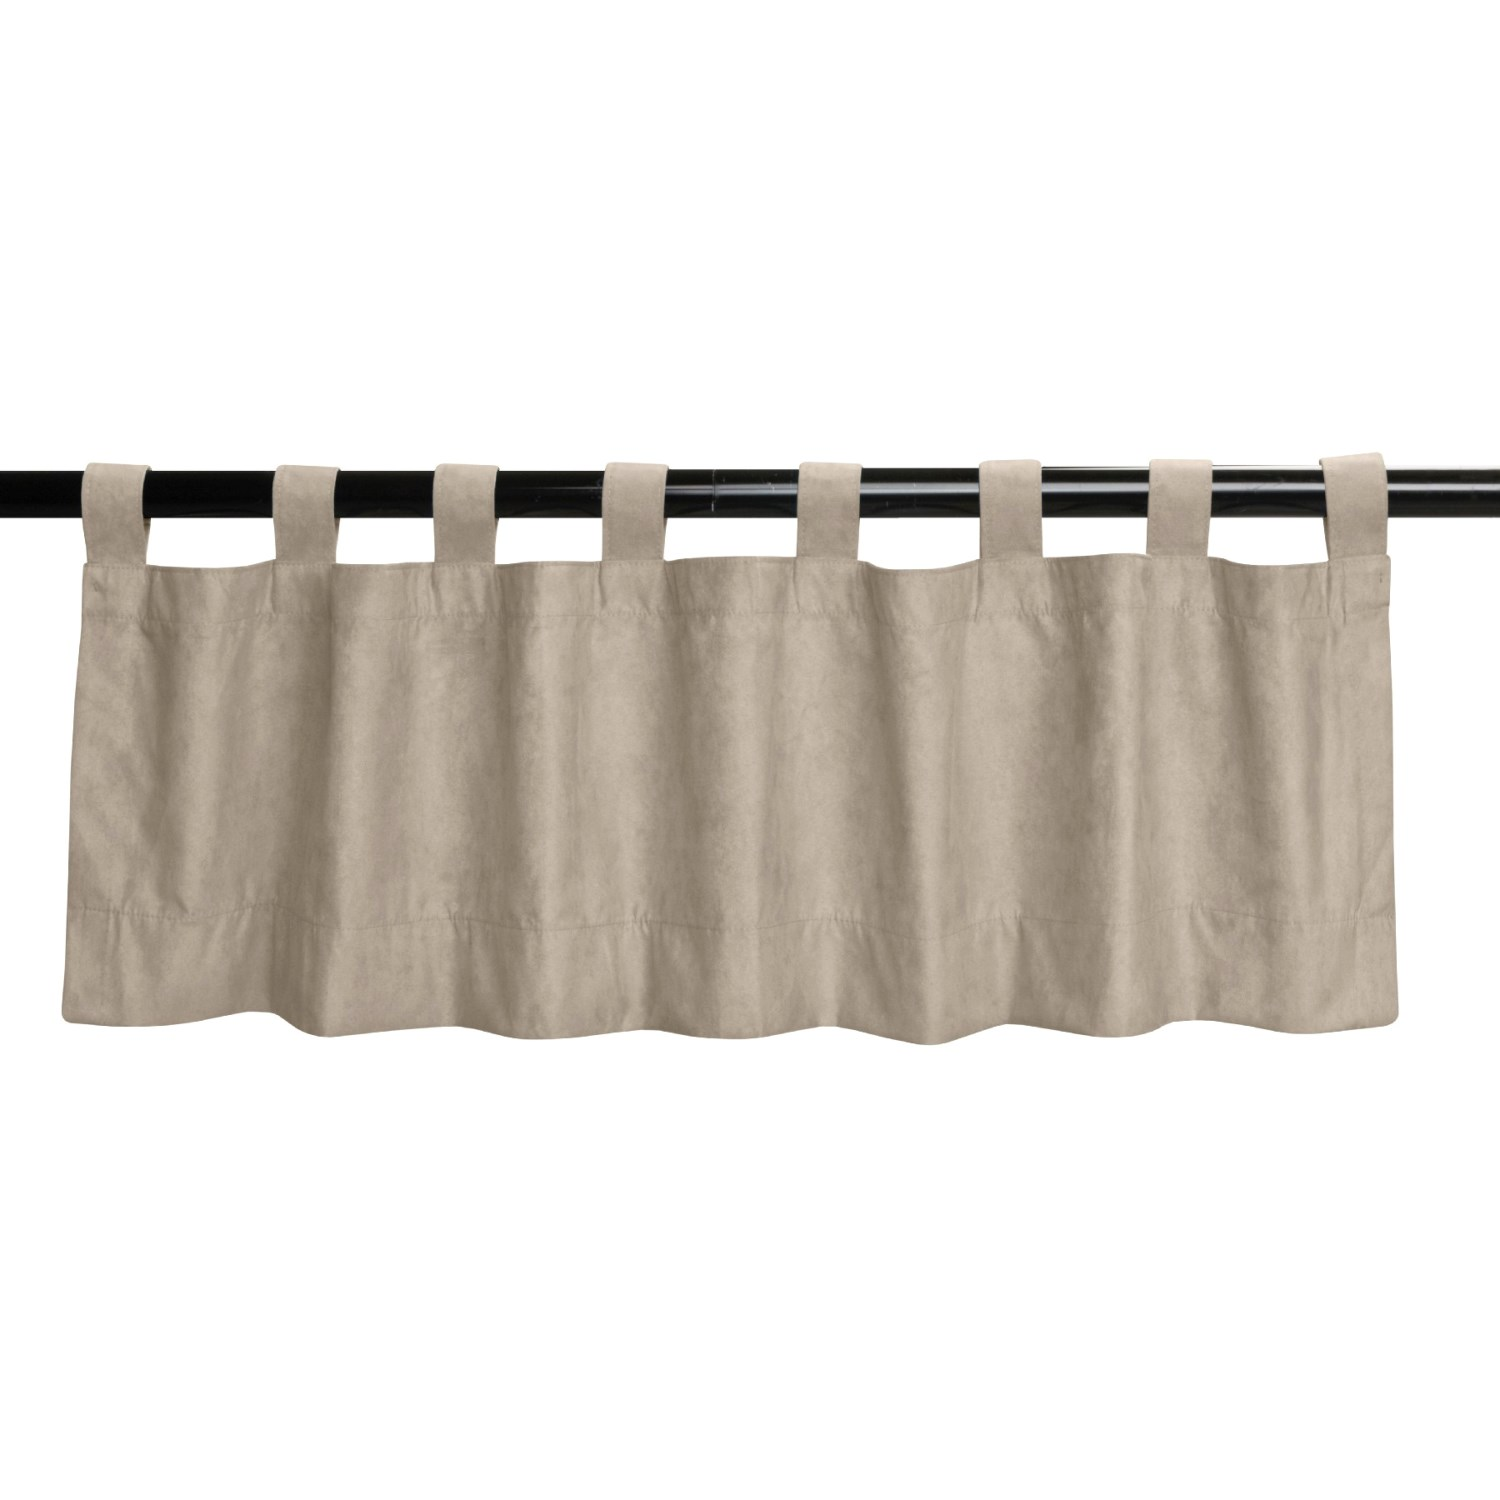 Commonwealth Home Fashions Blackout Curtain Valance